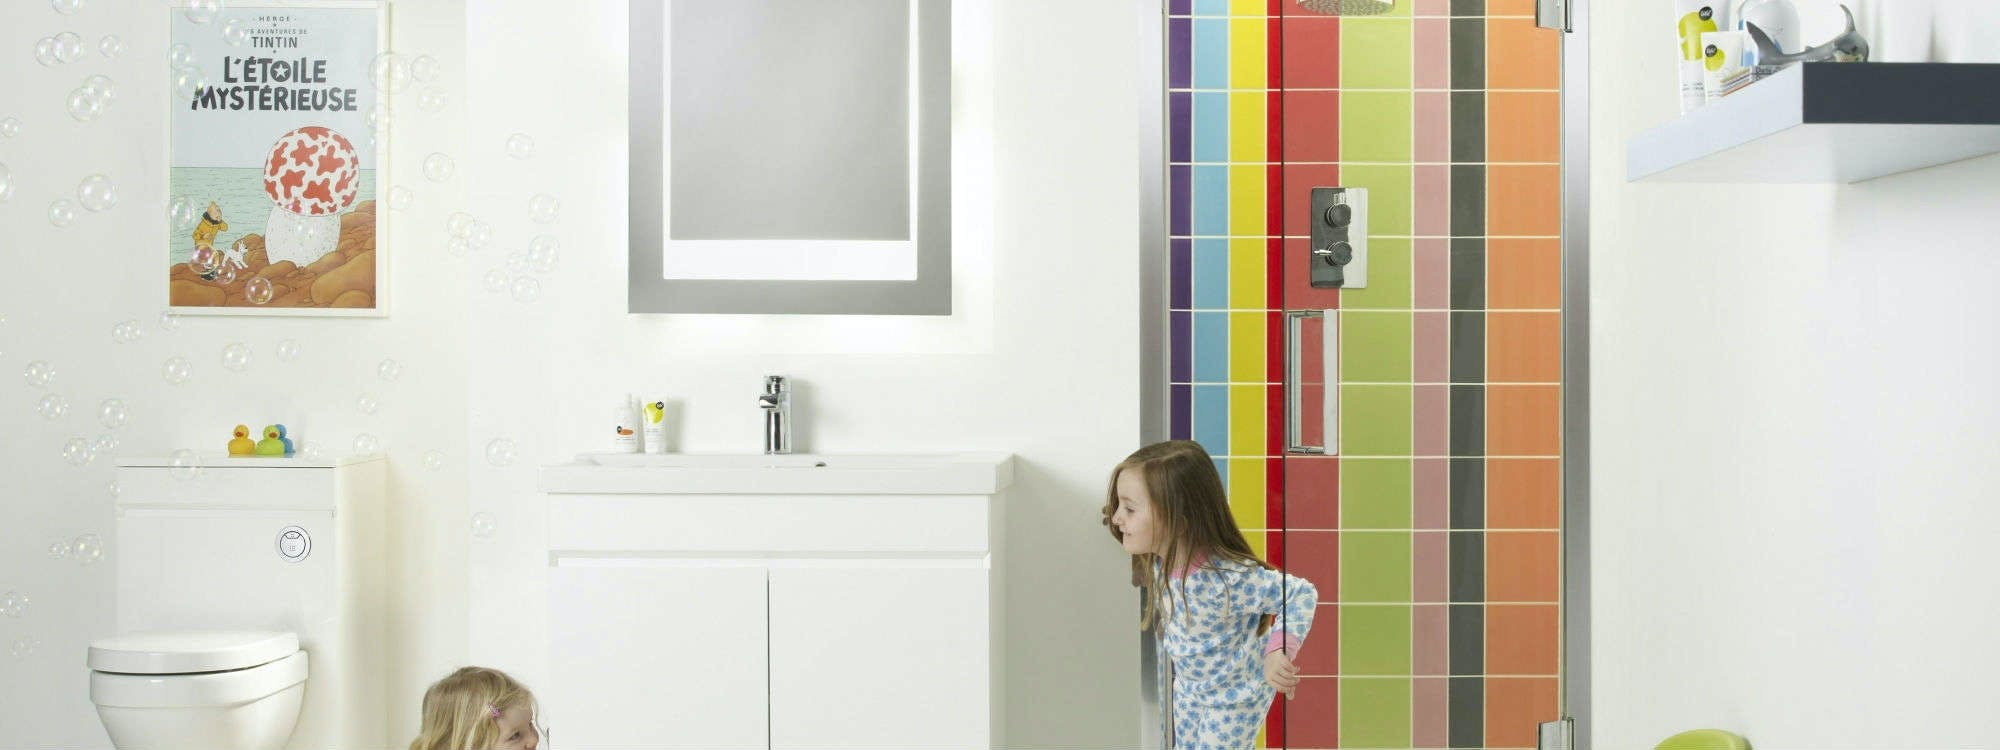 A bathroom should be the ideal place to relax and unwind, but at More Bathrooms, we understand that a busy family bathroom needs to work a little harder to accommodate the needs everyone in your household.